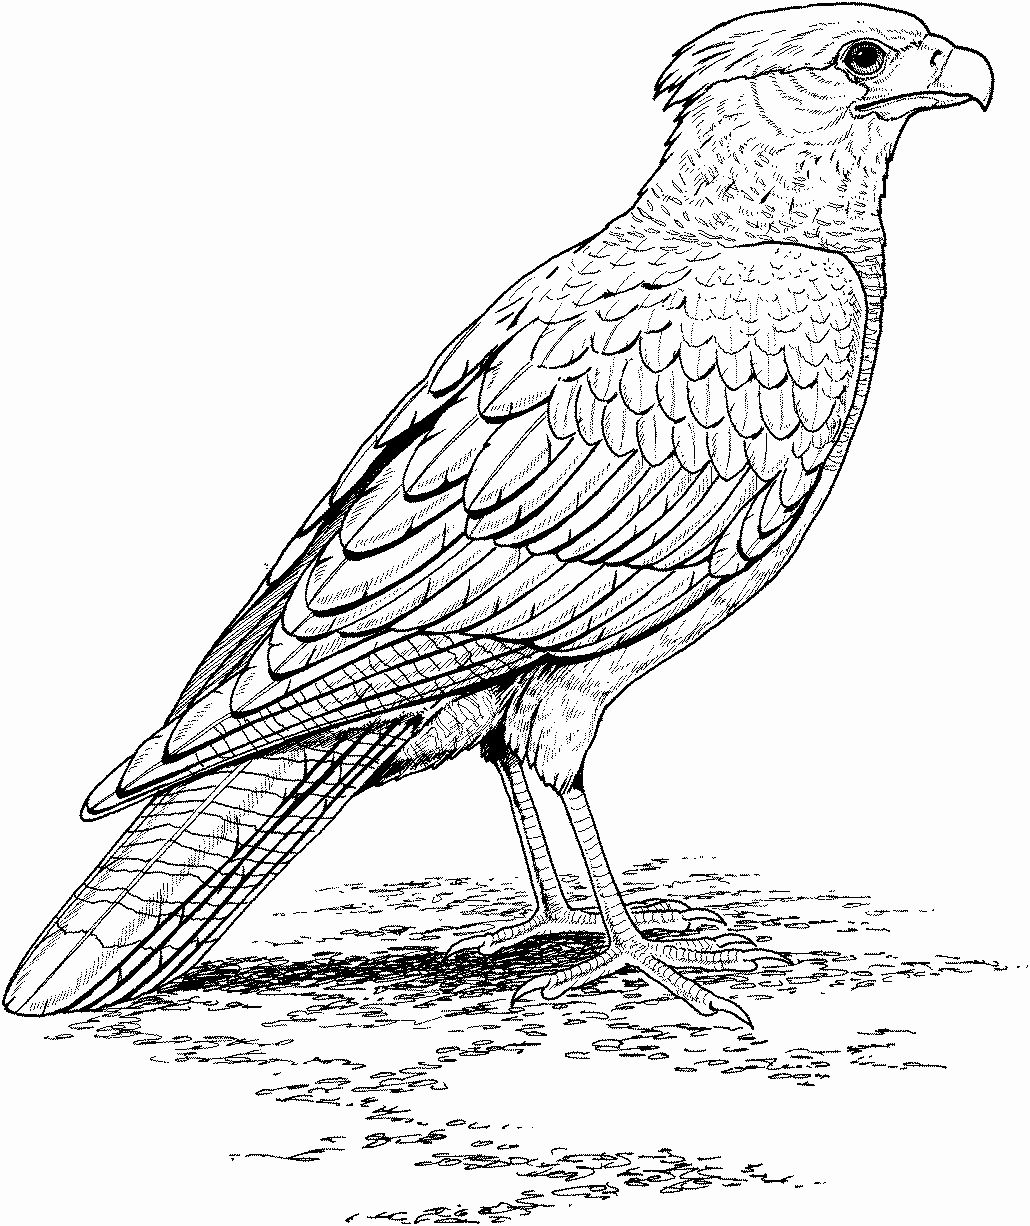 Realistic Animals Coloring Pages In 2020 Bird Coloring Pages Animal Coloring Pages Flower Coloring Pages